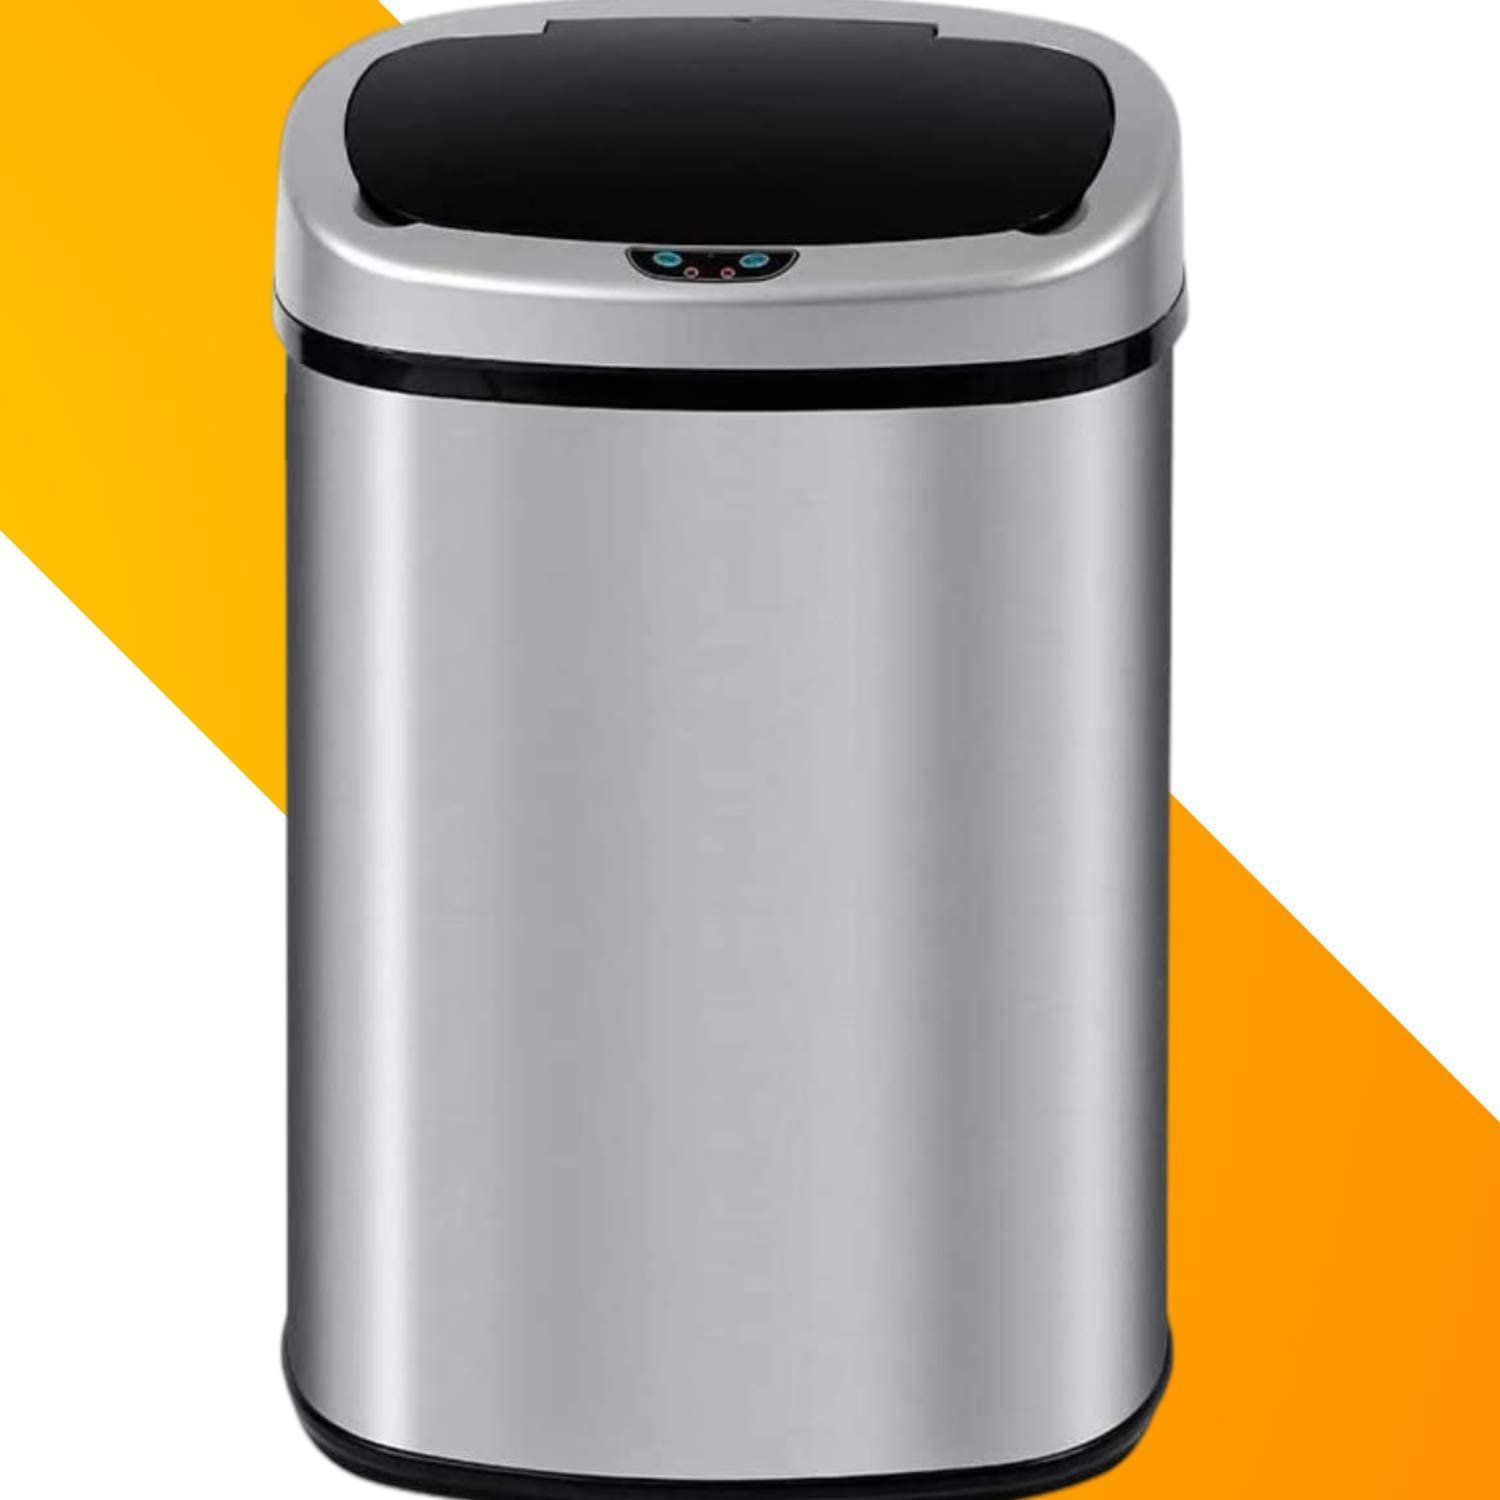 13 Gallon Stainless Steel Touchless Trash Can Automatic Sensor Garbage Trash Bin For Kitchen Bathroom Bedroom With Lid Oval Shape Office Waste Bin Brushed Powered By Batteries Not Included Home